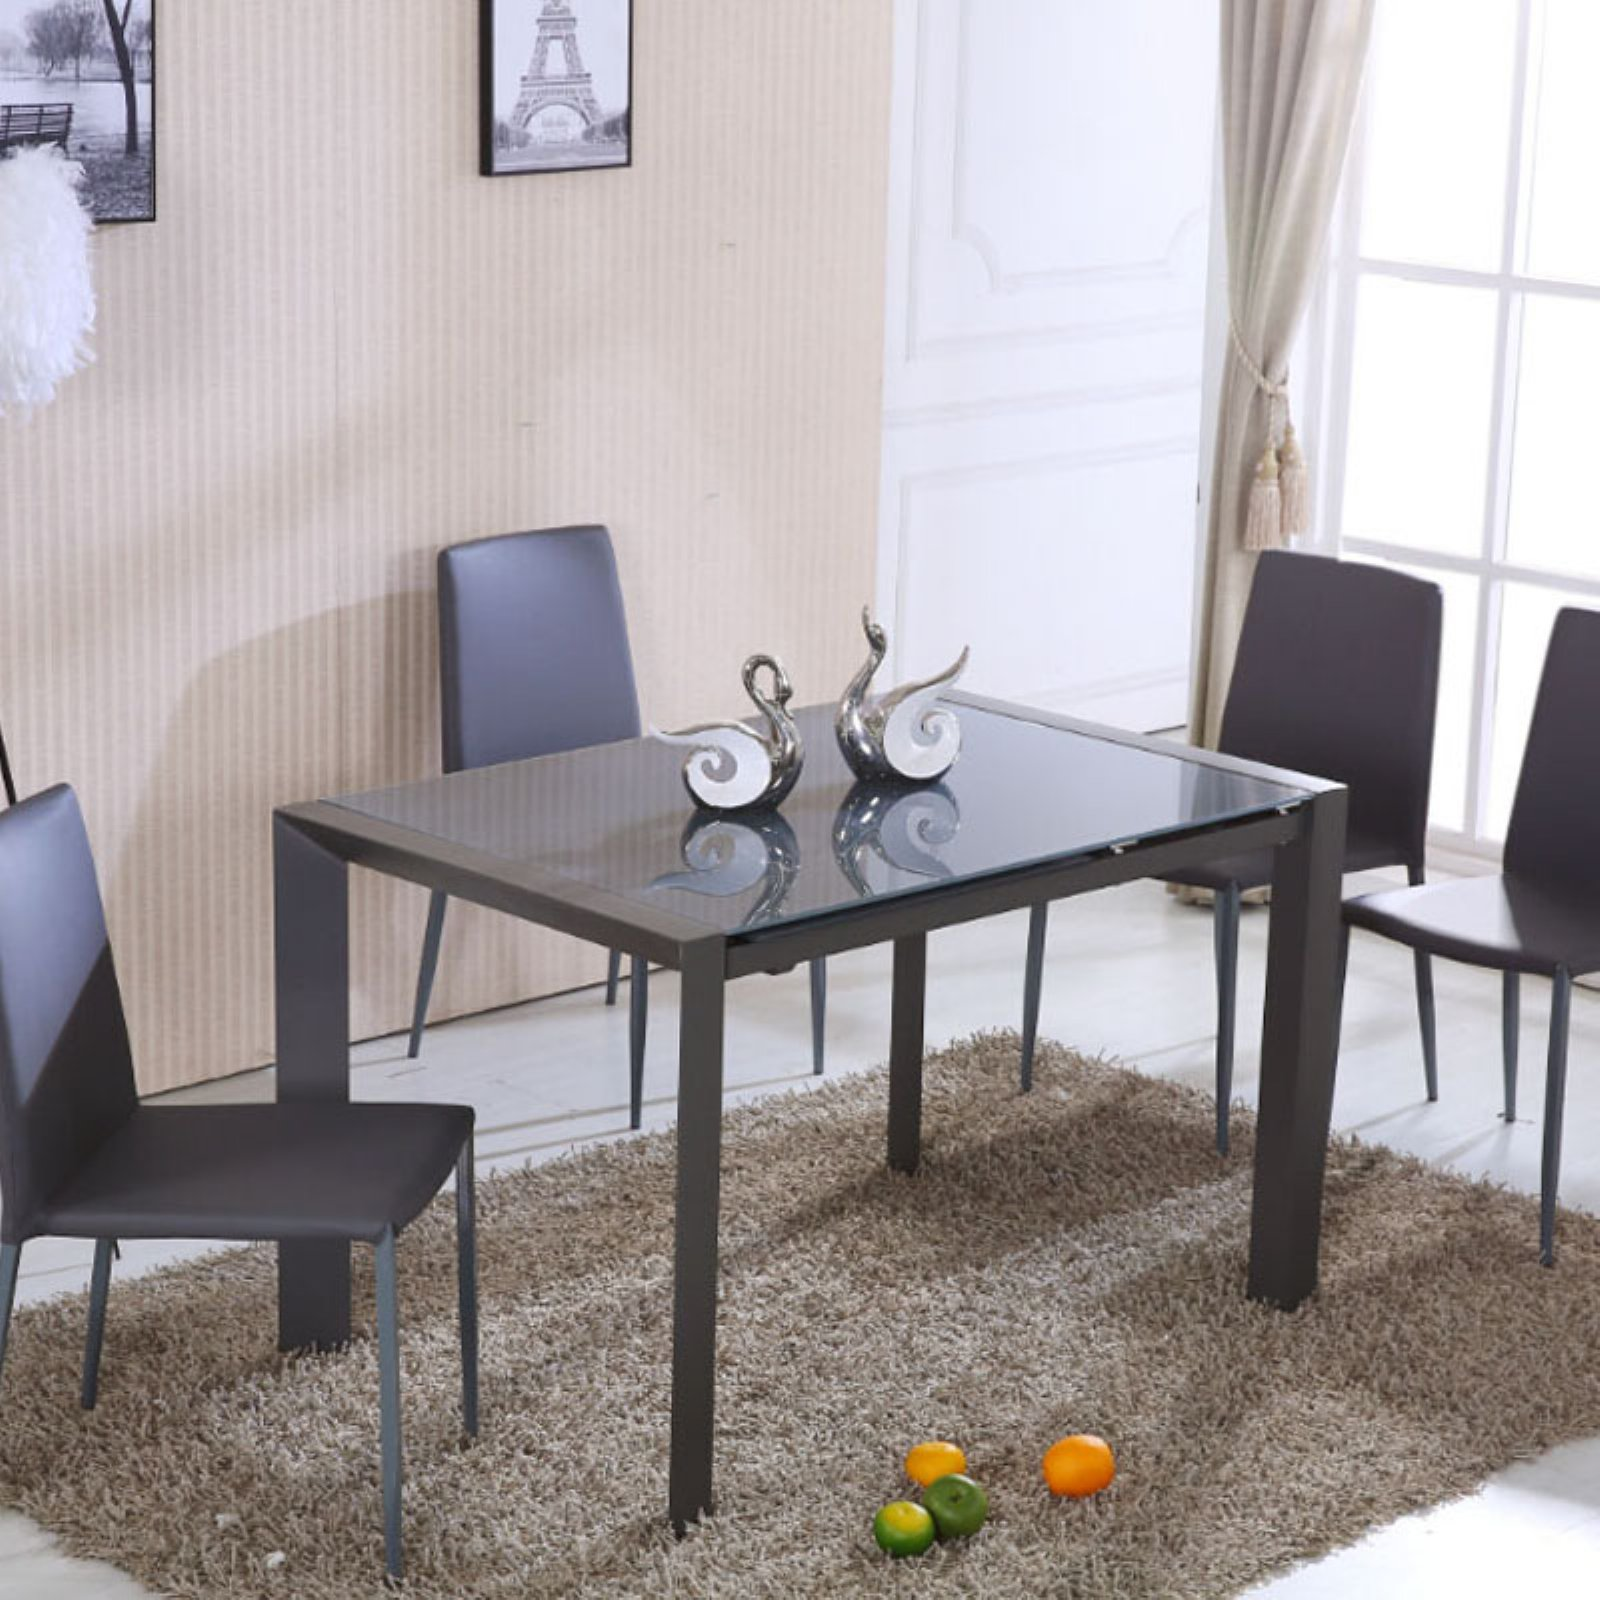 Diamond Sofa Carbon Glass Top Extension Dining Table with Metal Frame